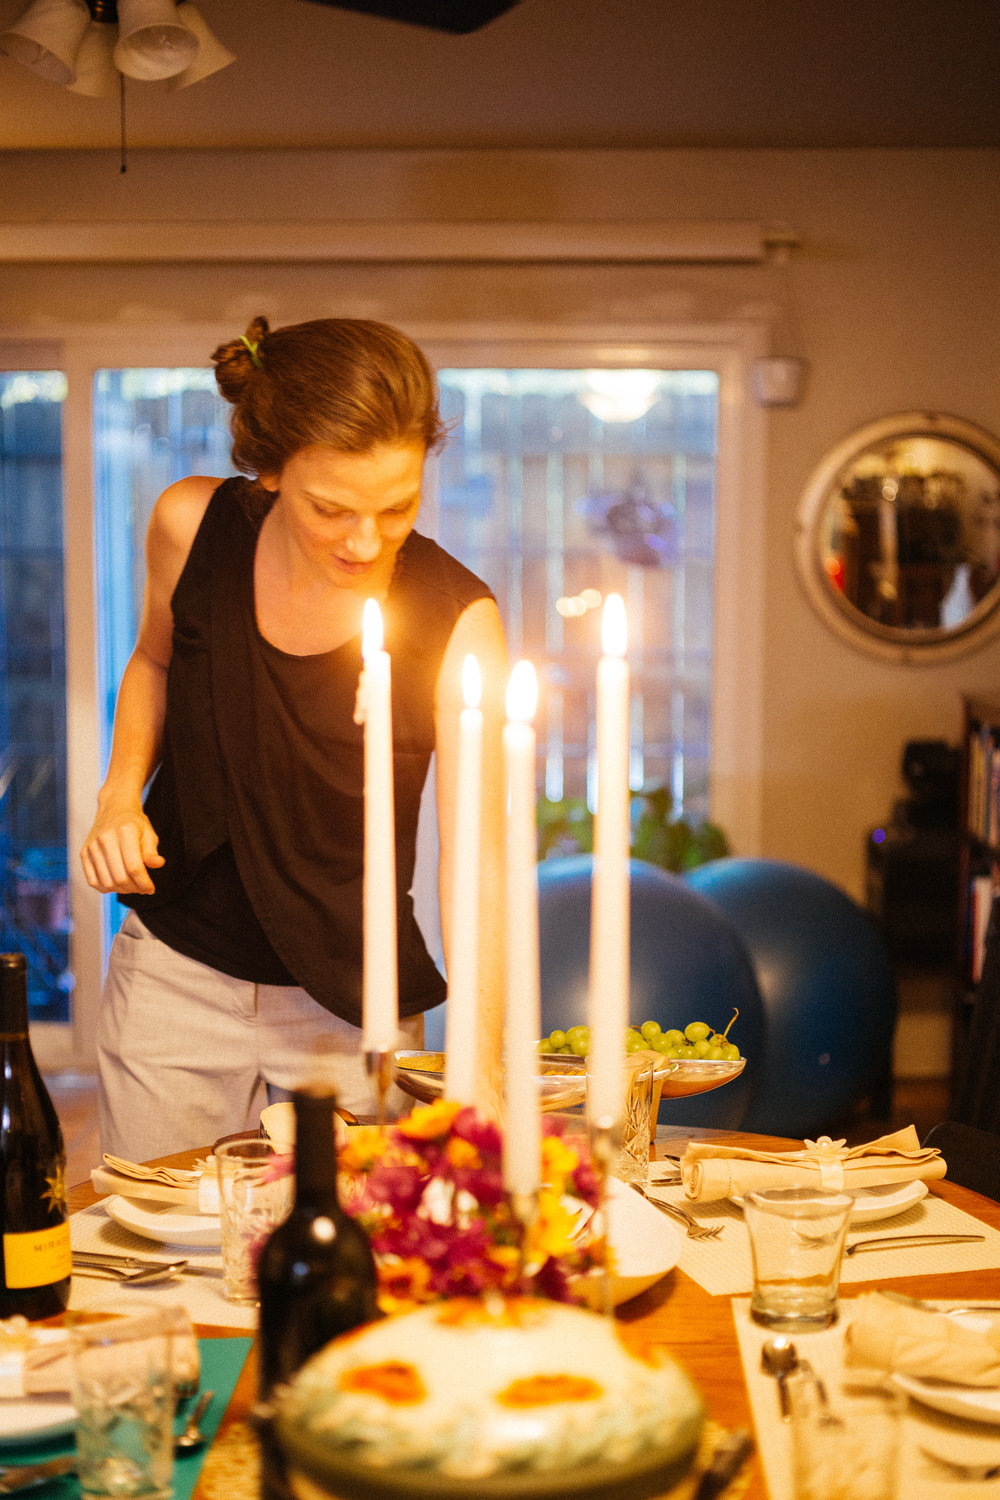 Bonnie, who graciously put together Code Park's team dinner along with Ben, places final touches on the dinner table in her home. Courtesy of Wanjun Zhang. August 24th, 2018.